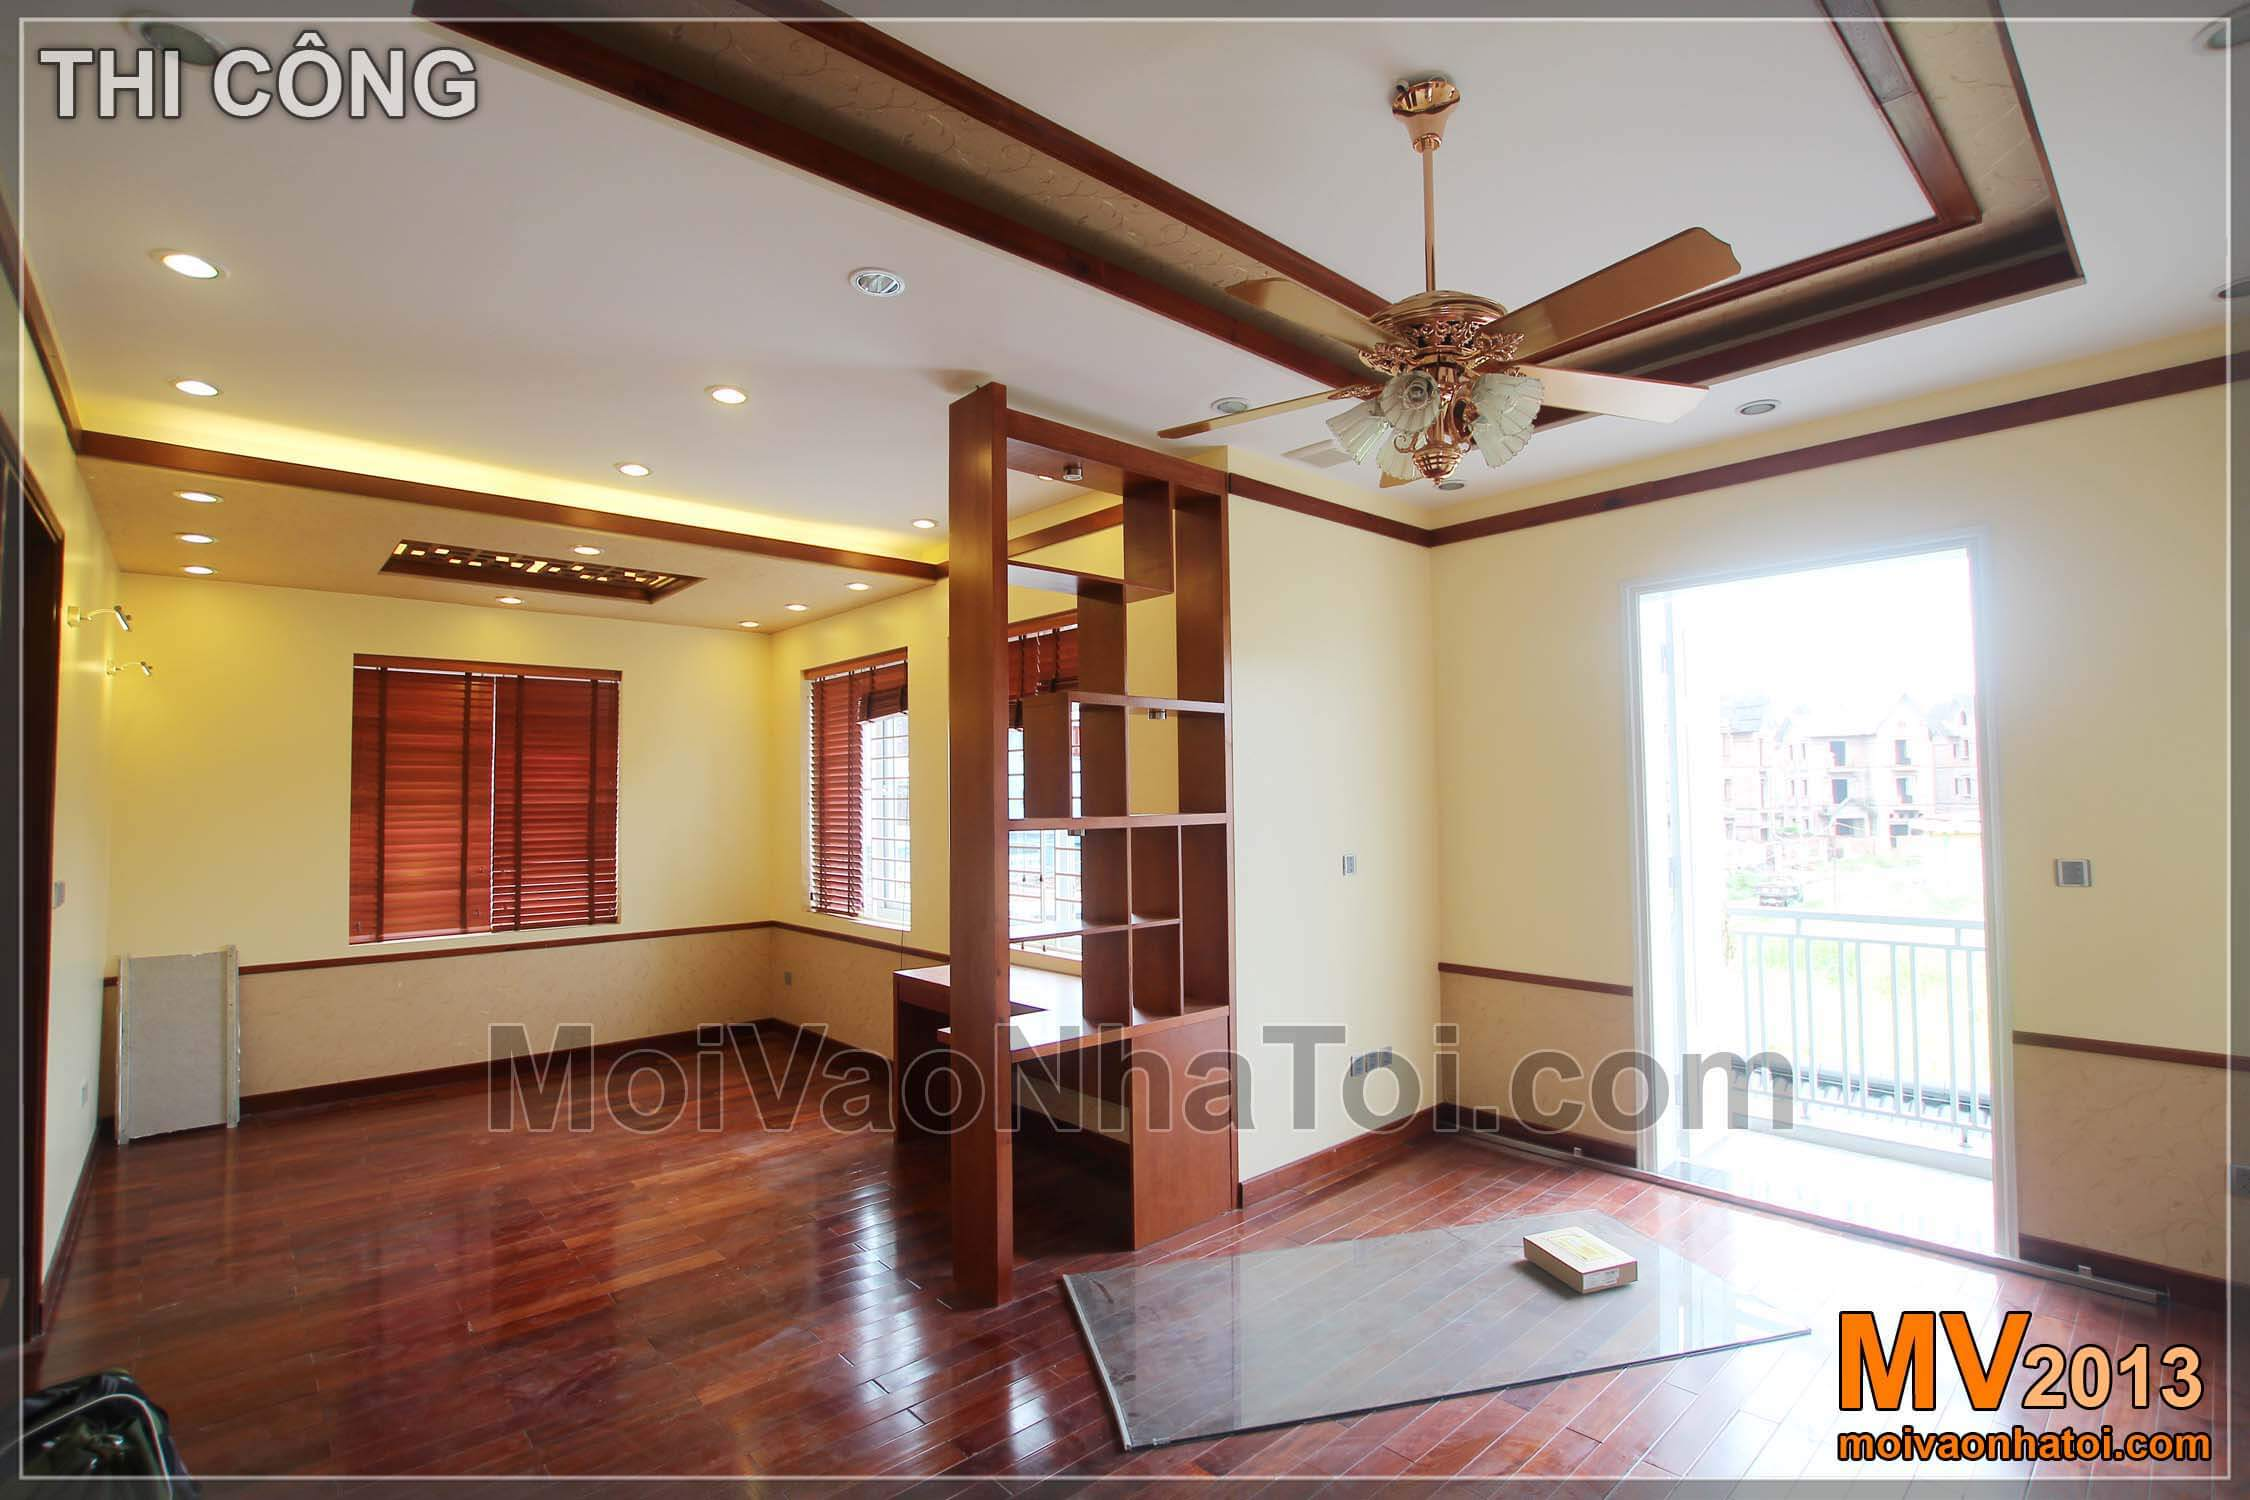 VIET HUNG VILLA DESIGN (PART 2) - INTERIOR FLOOR 2, 3, 4